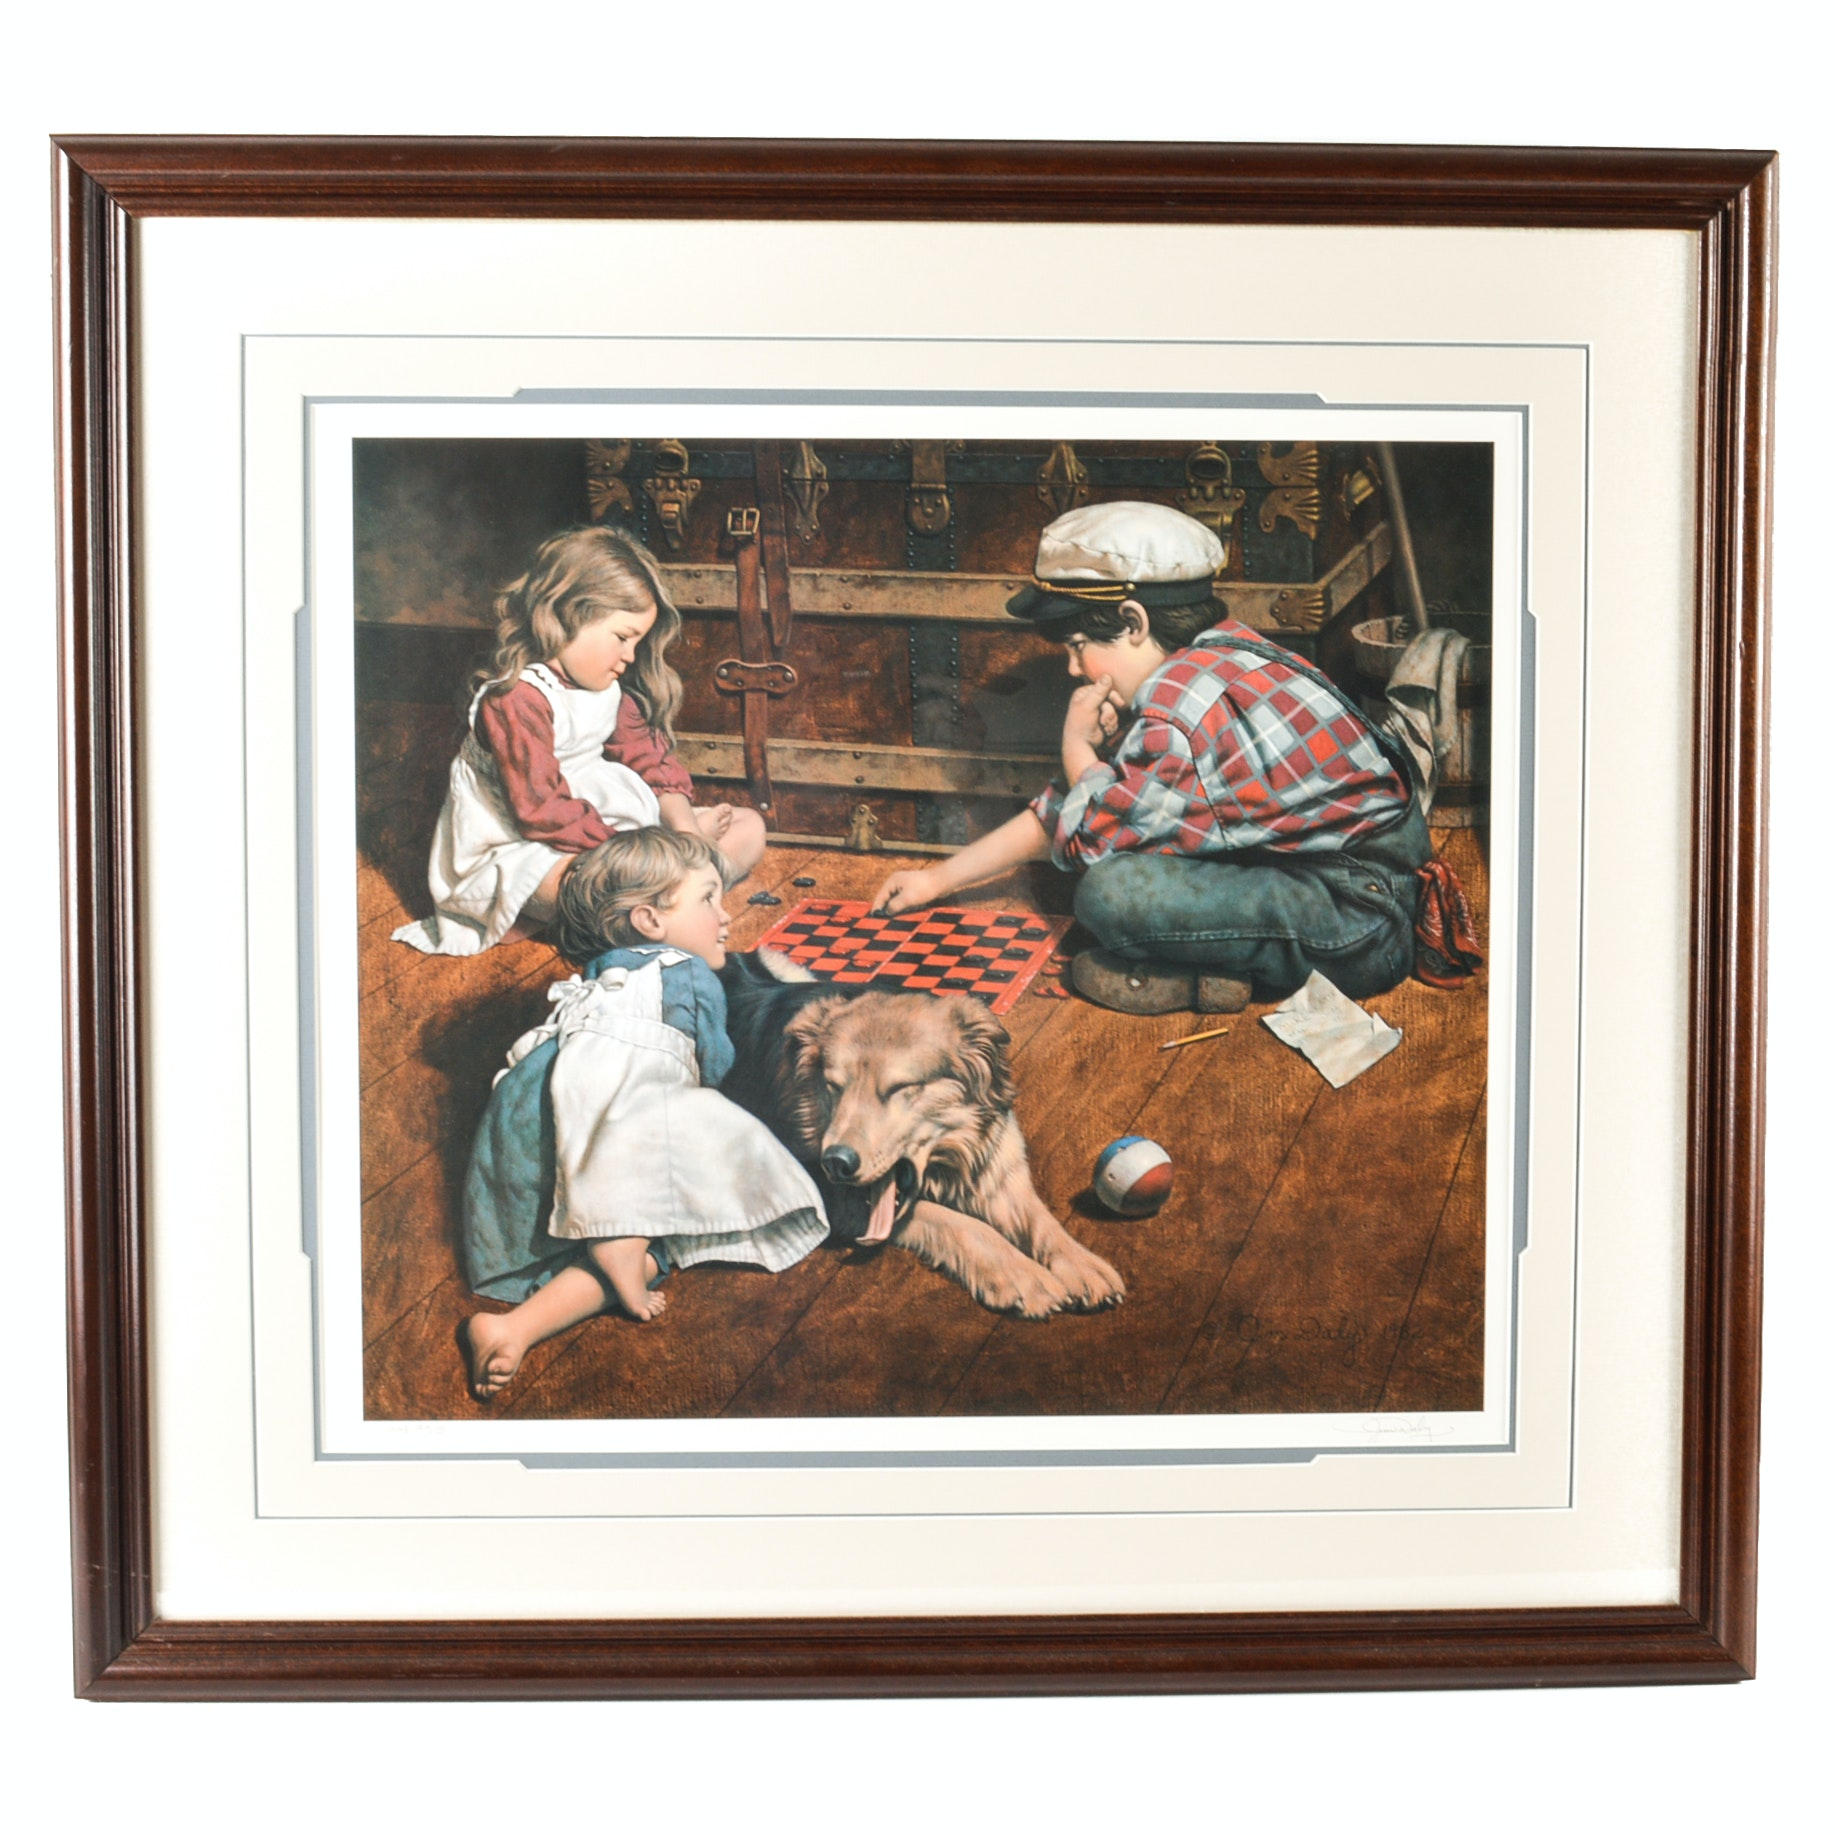 """Jim Daly Signed Limited Edition Offset Lithograph """"Tie Breaker"""""""